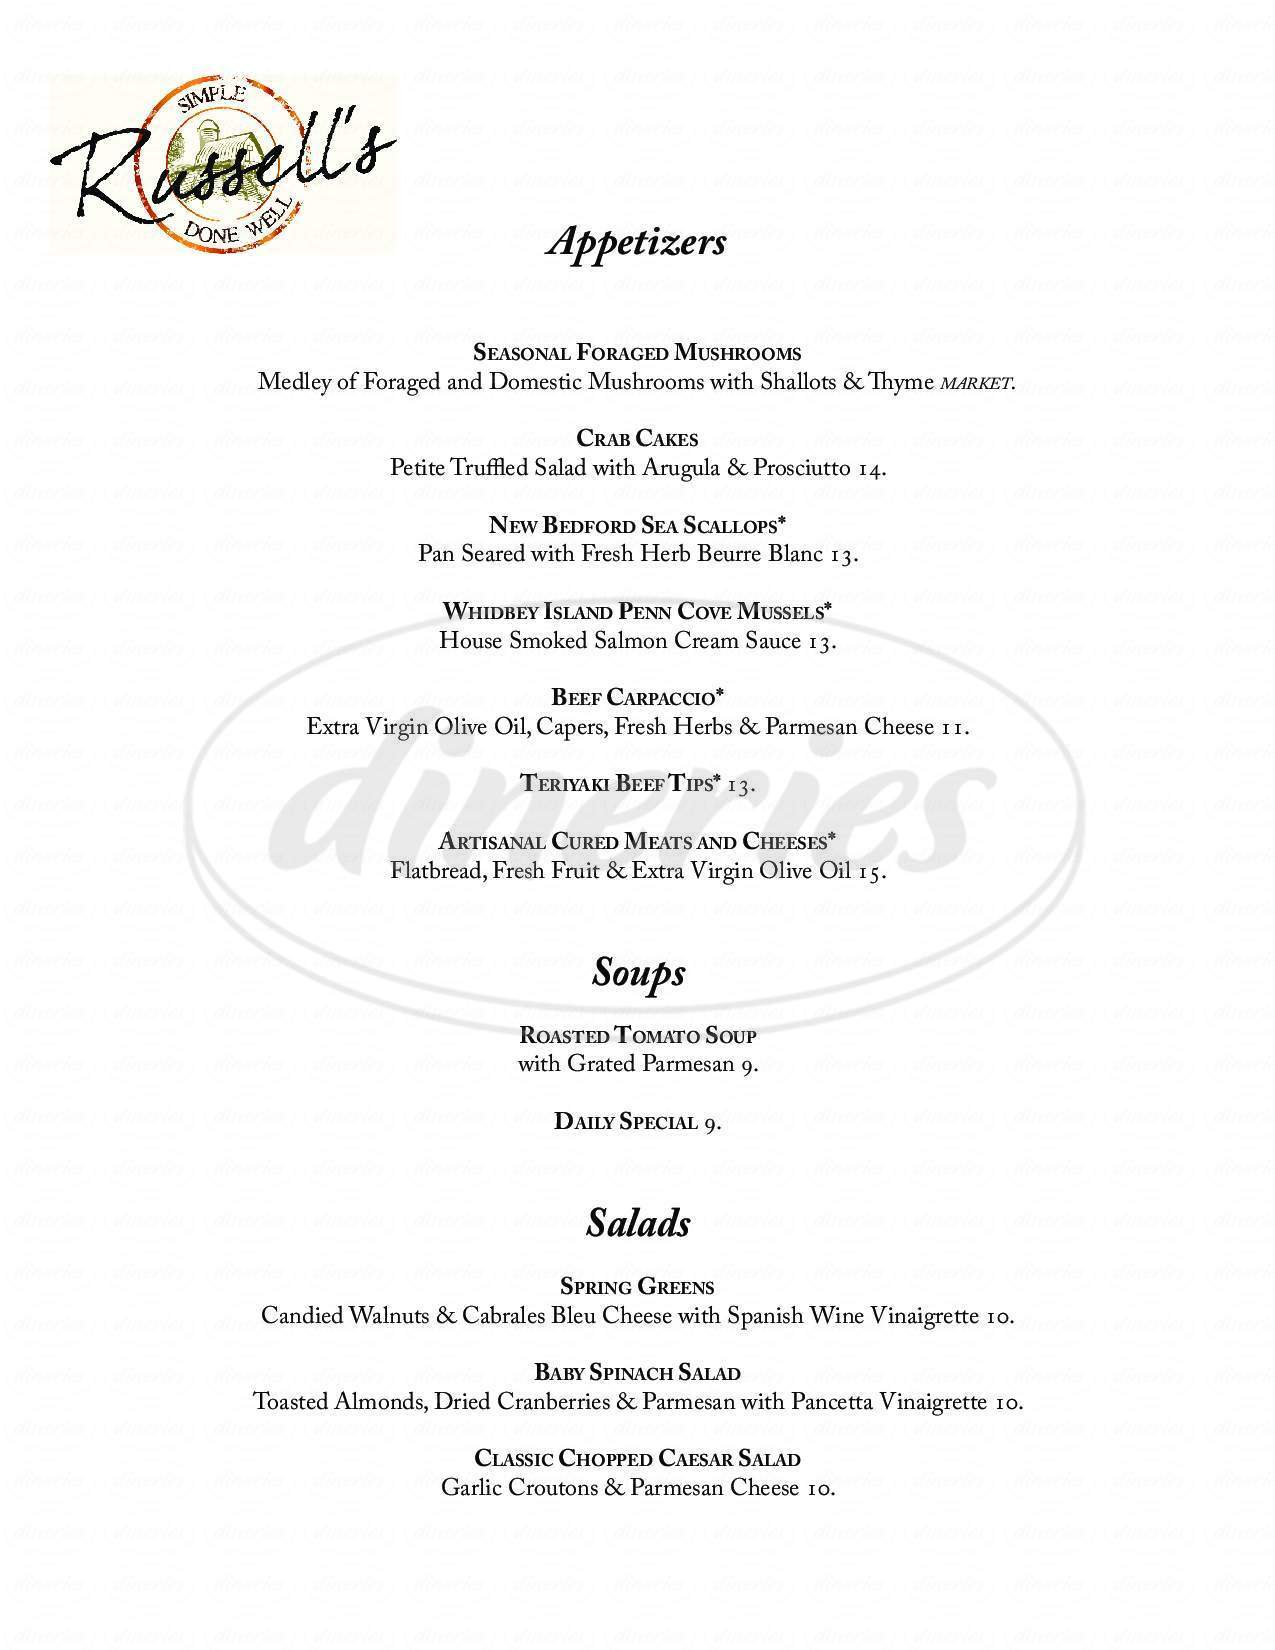 menu for Russell's